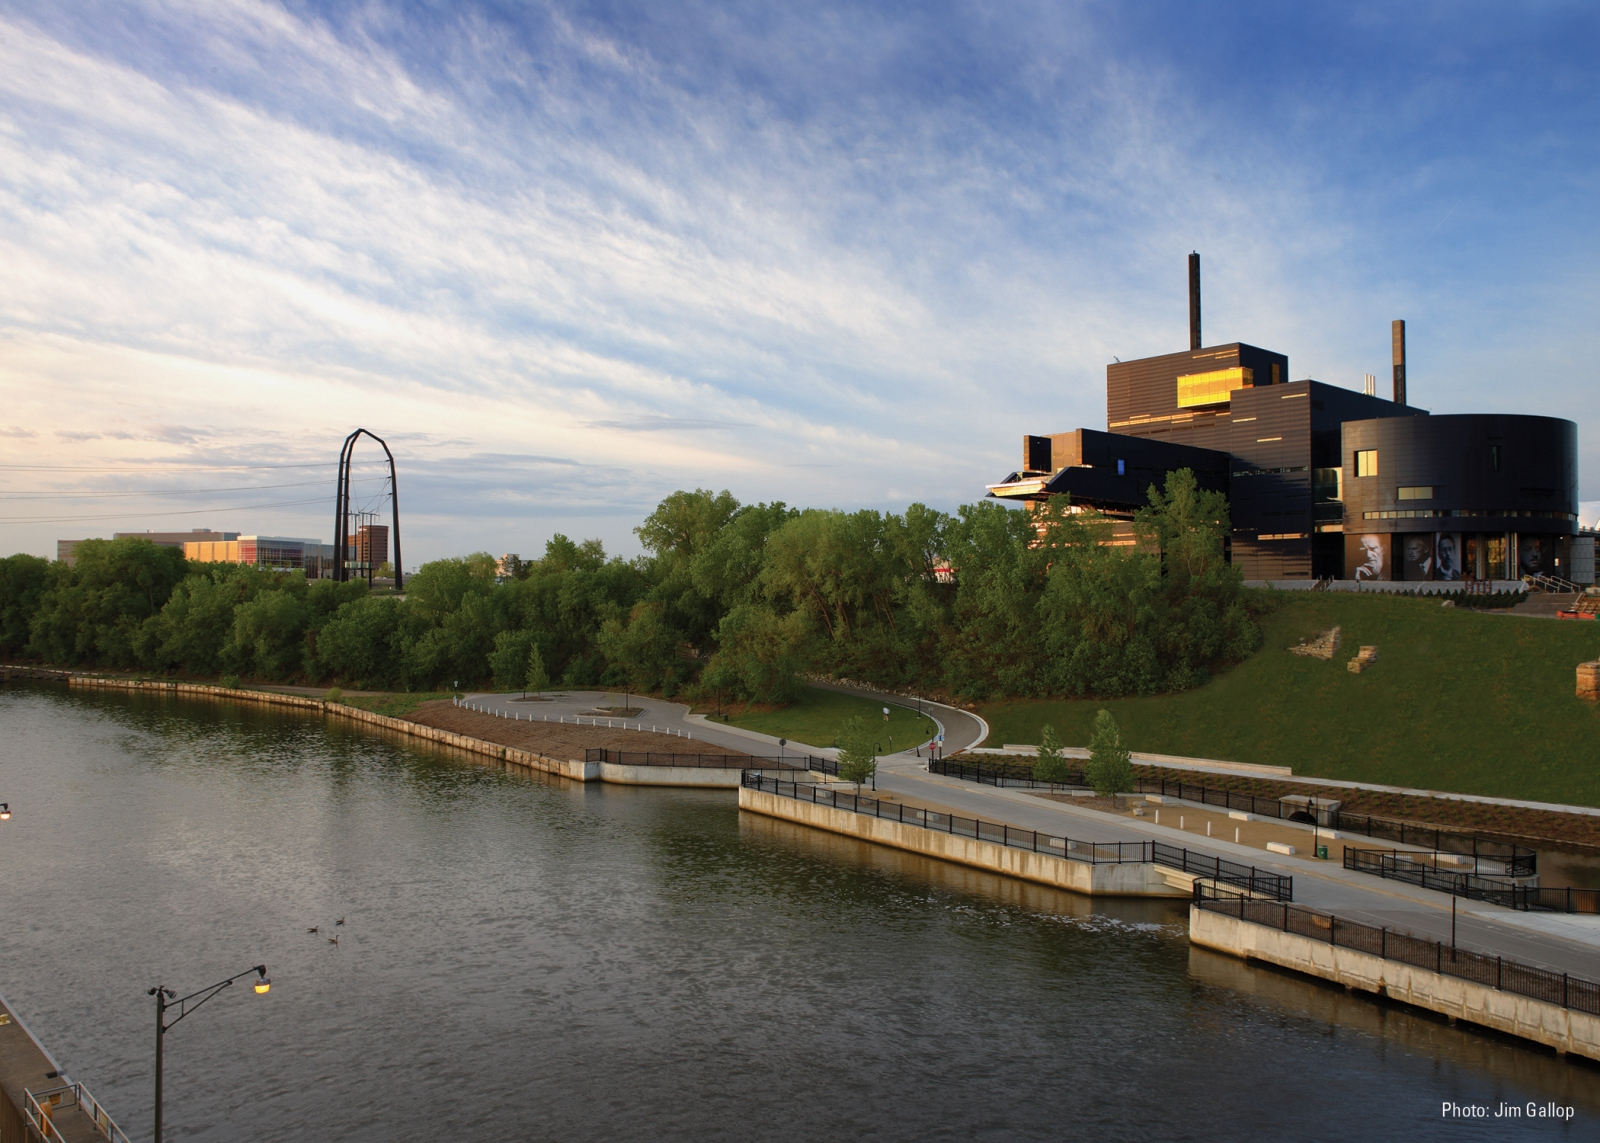 By Gallop Studios, courtesy Guthrie Theater. The Guthrie Theater on the Mississippi Riverbank at sunset.